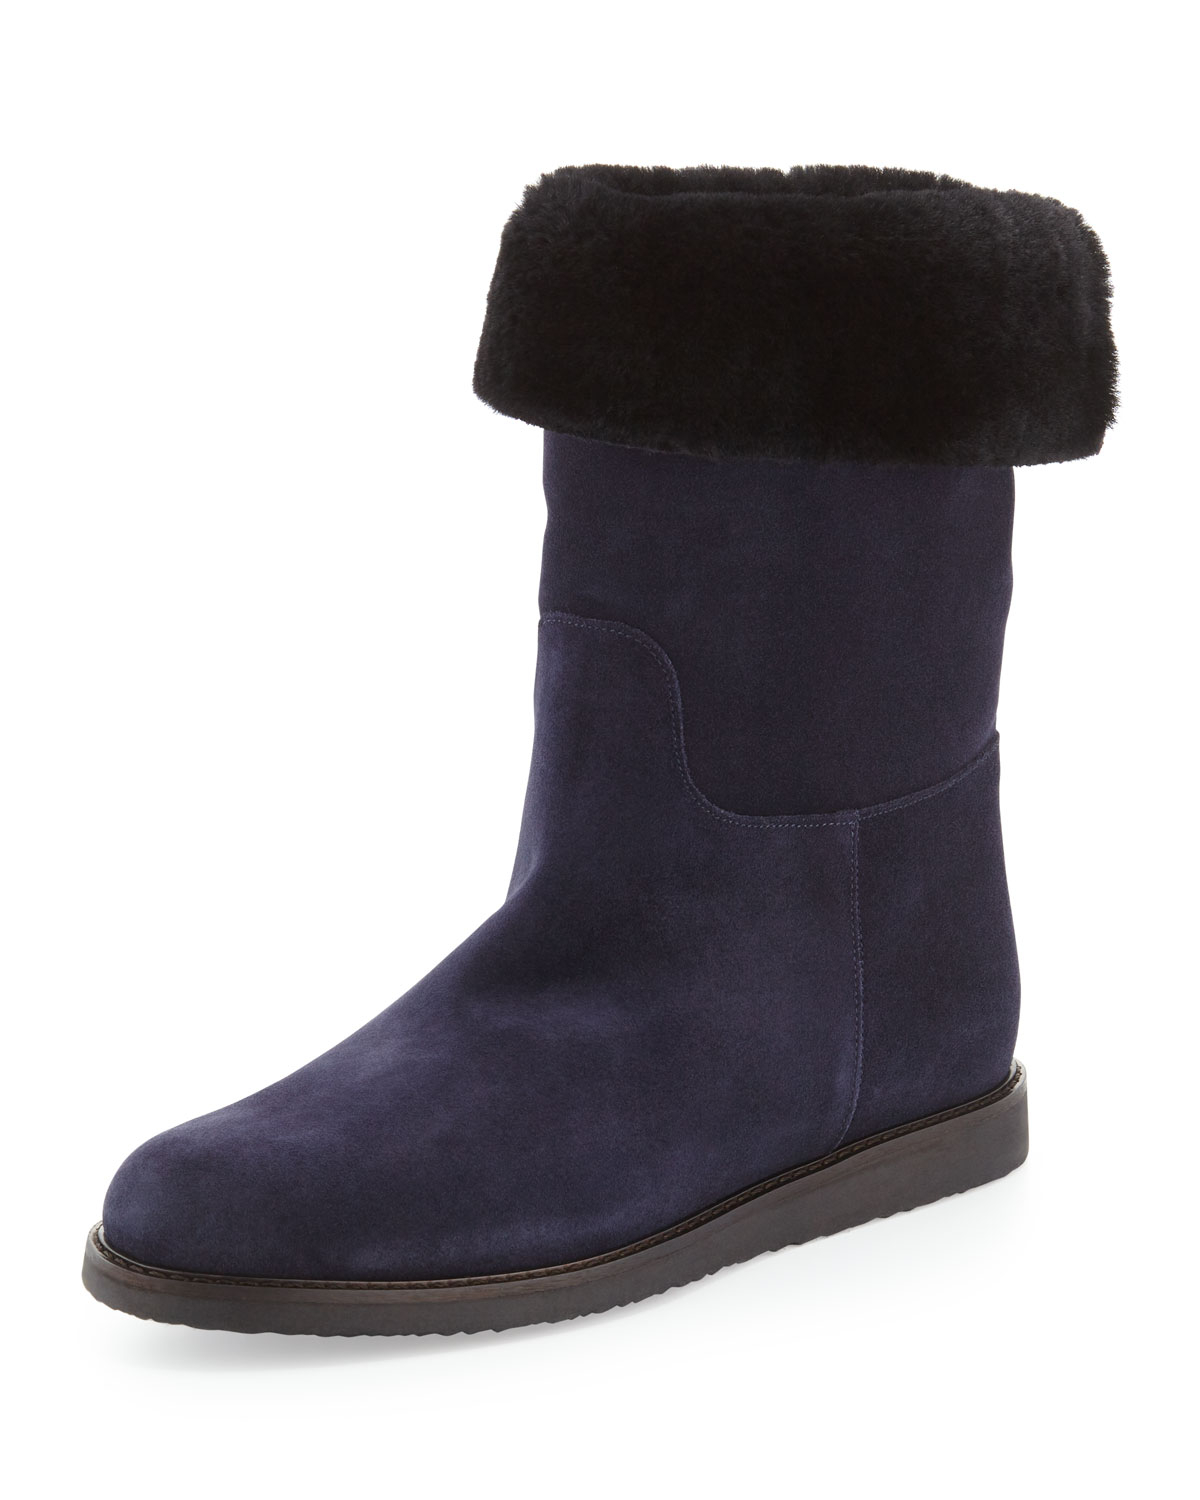 ferragamo my ease suede boot in black lyst